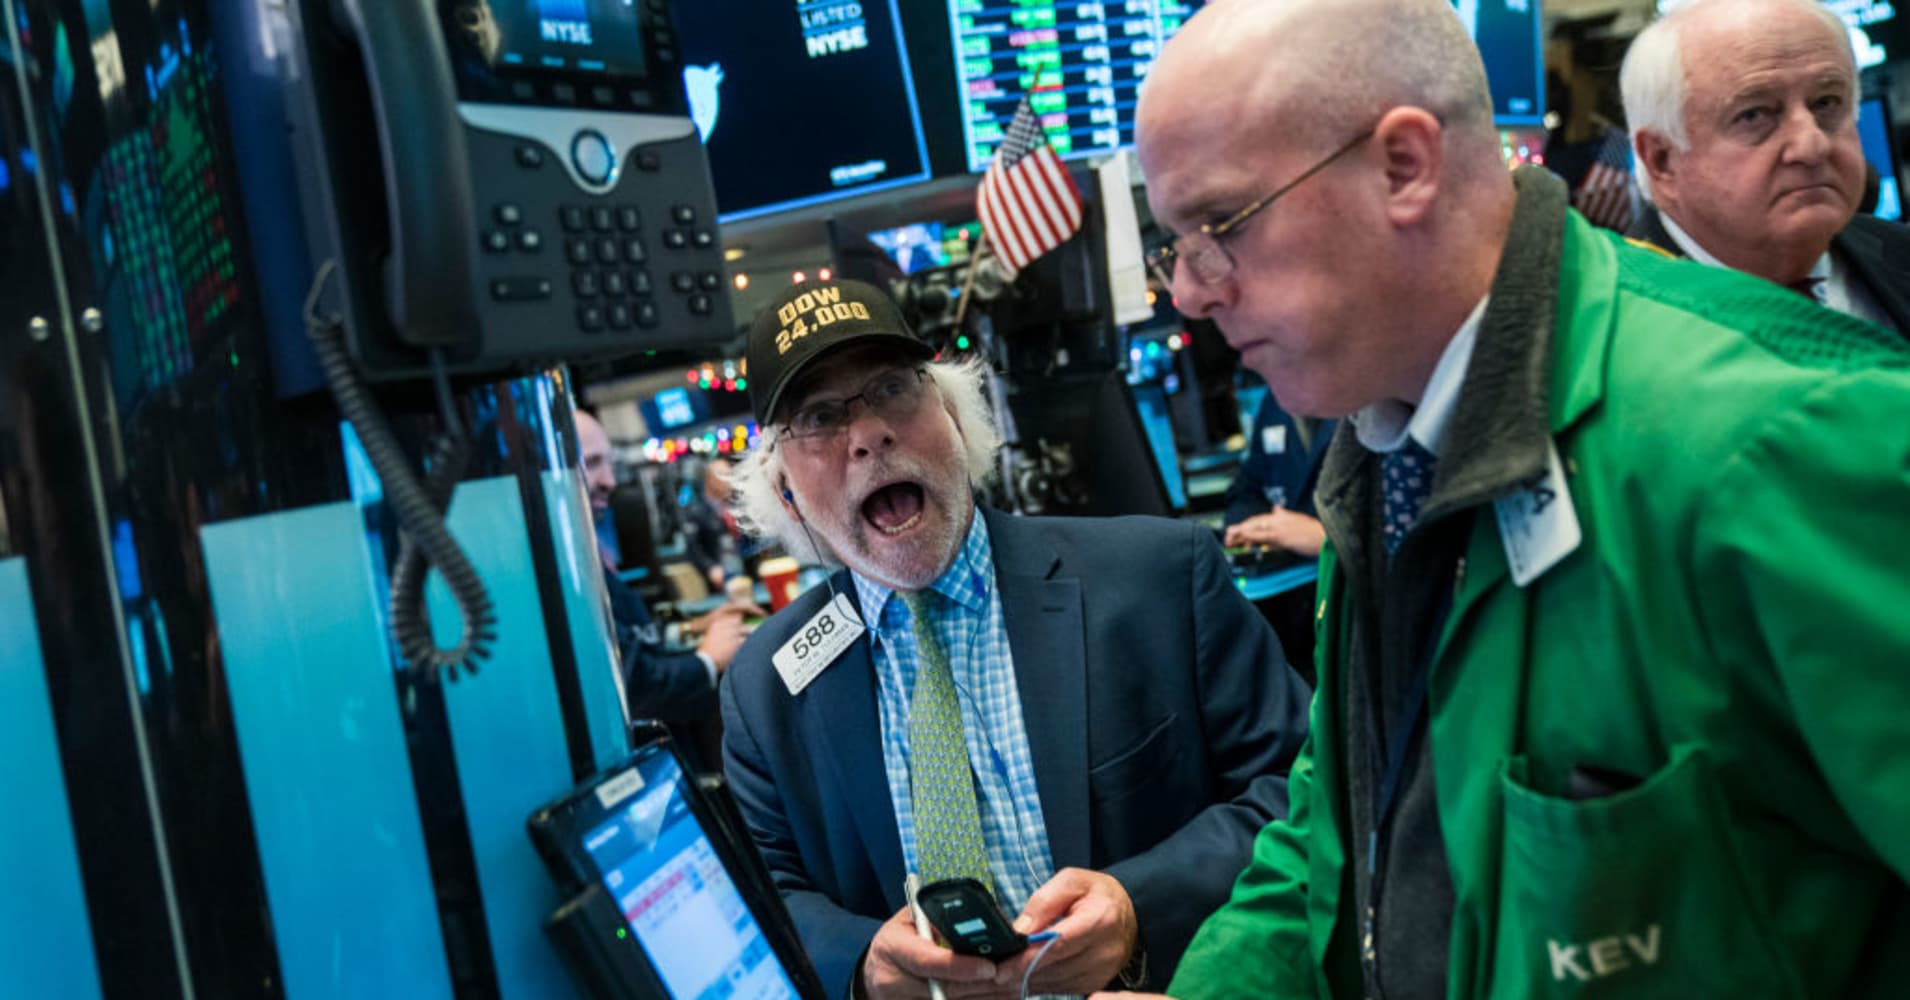 Stocks making the biggest moves midday: CVS Health, Southwest, Charles Schwab & more